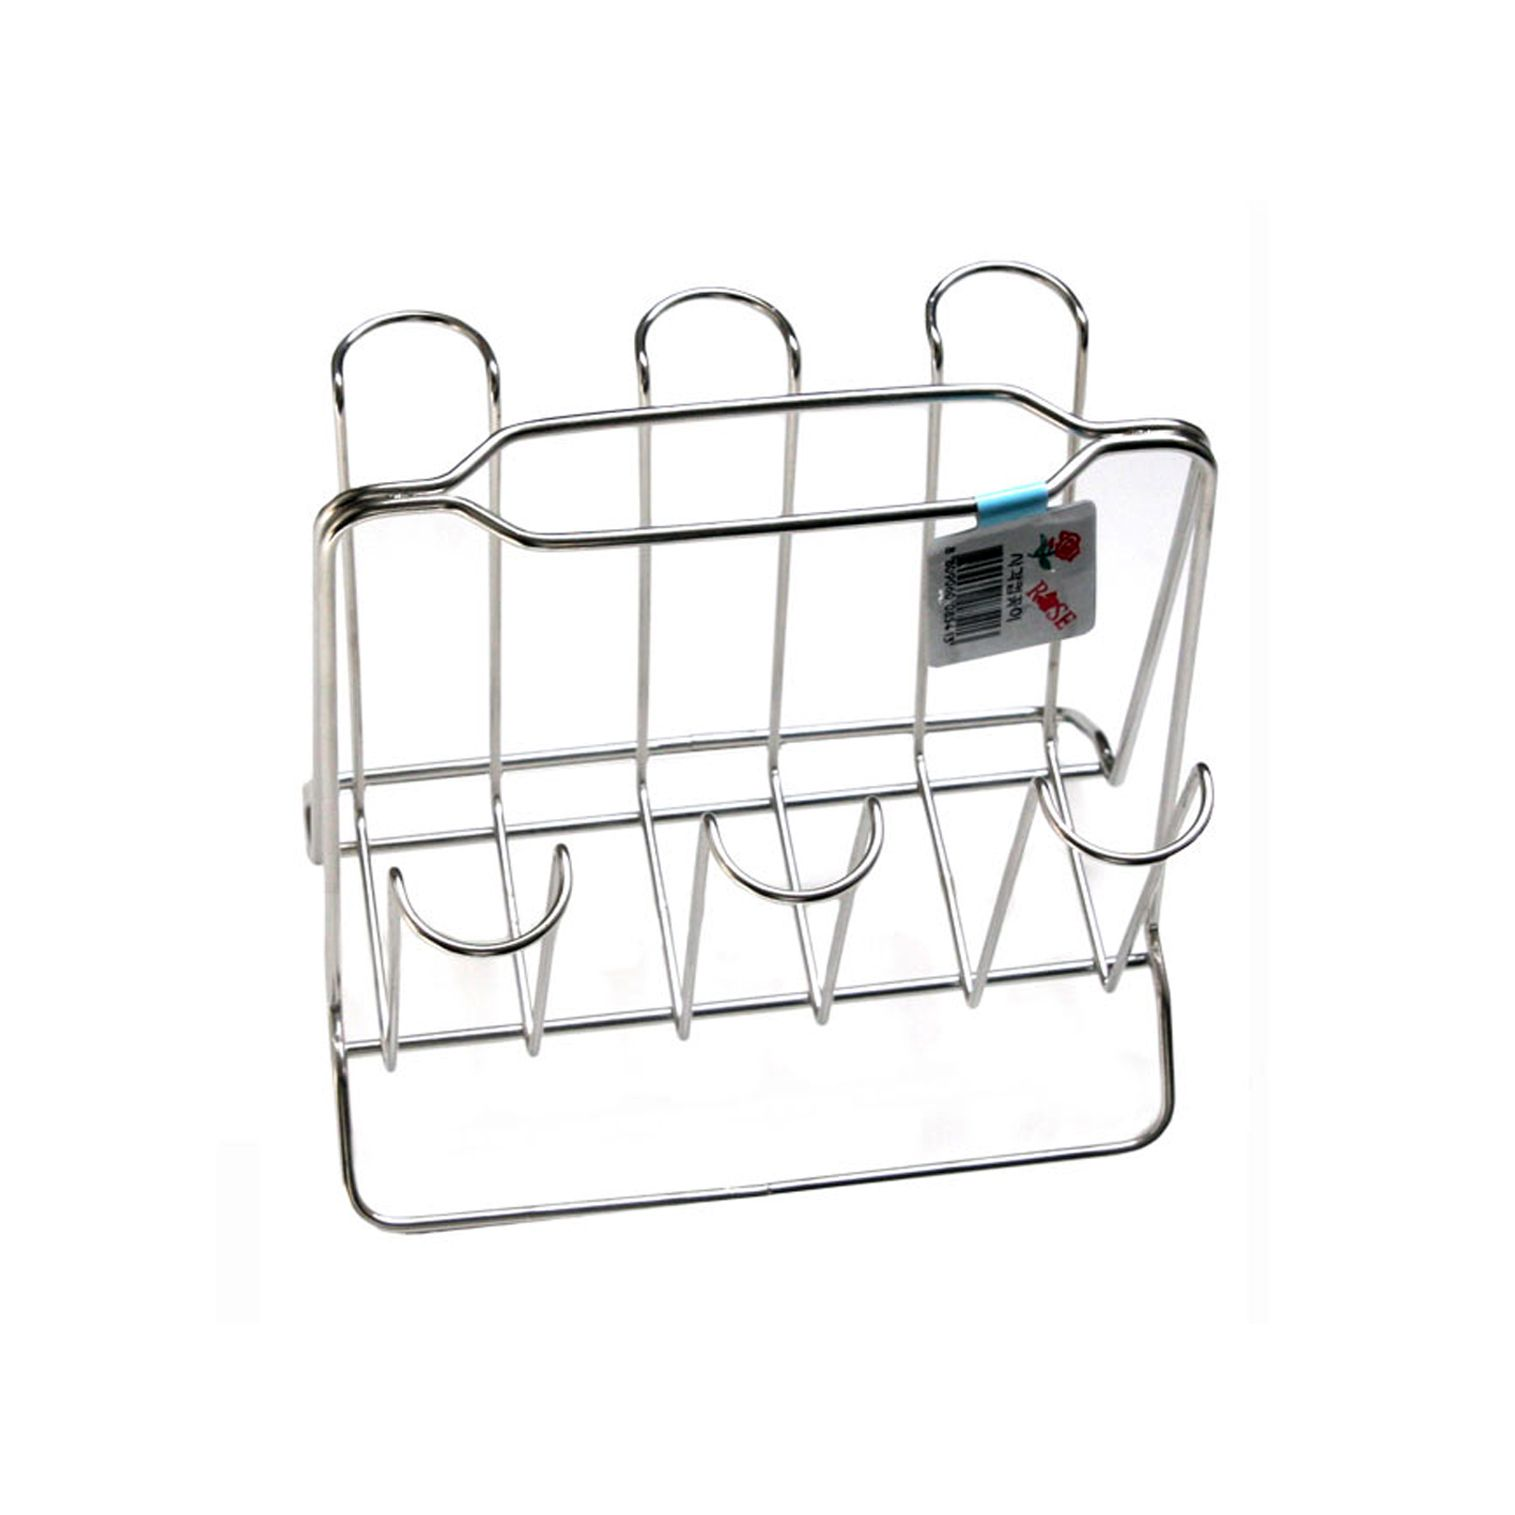 New Chrome Cup Stand For 6 Mug Tea Coffee Cup Holder